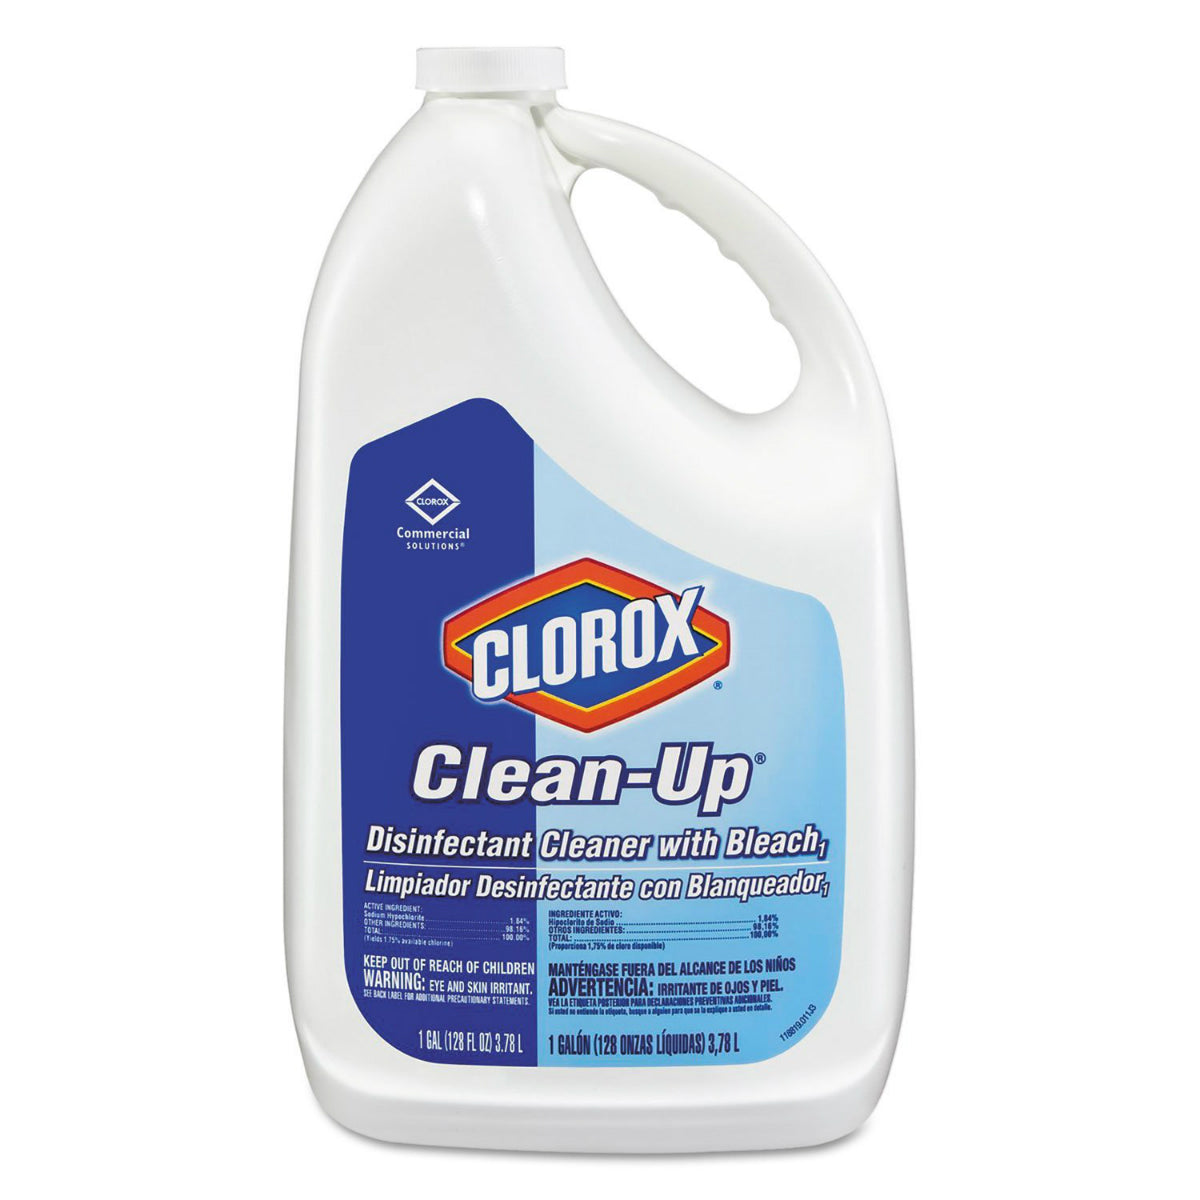 Clorox 35420 Commercial Solutions Clean-Up Disinfectant Cleaner w/Bleach,128 Oz